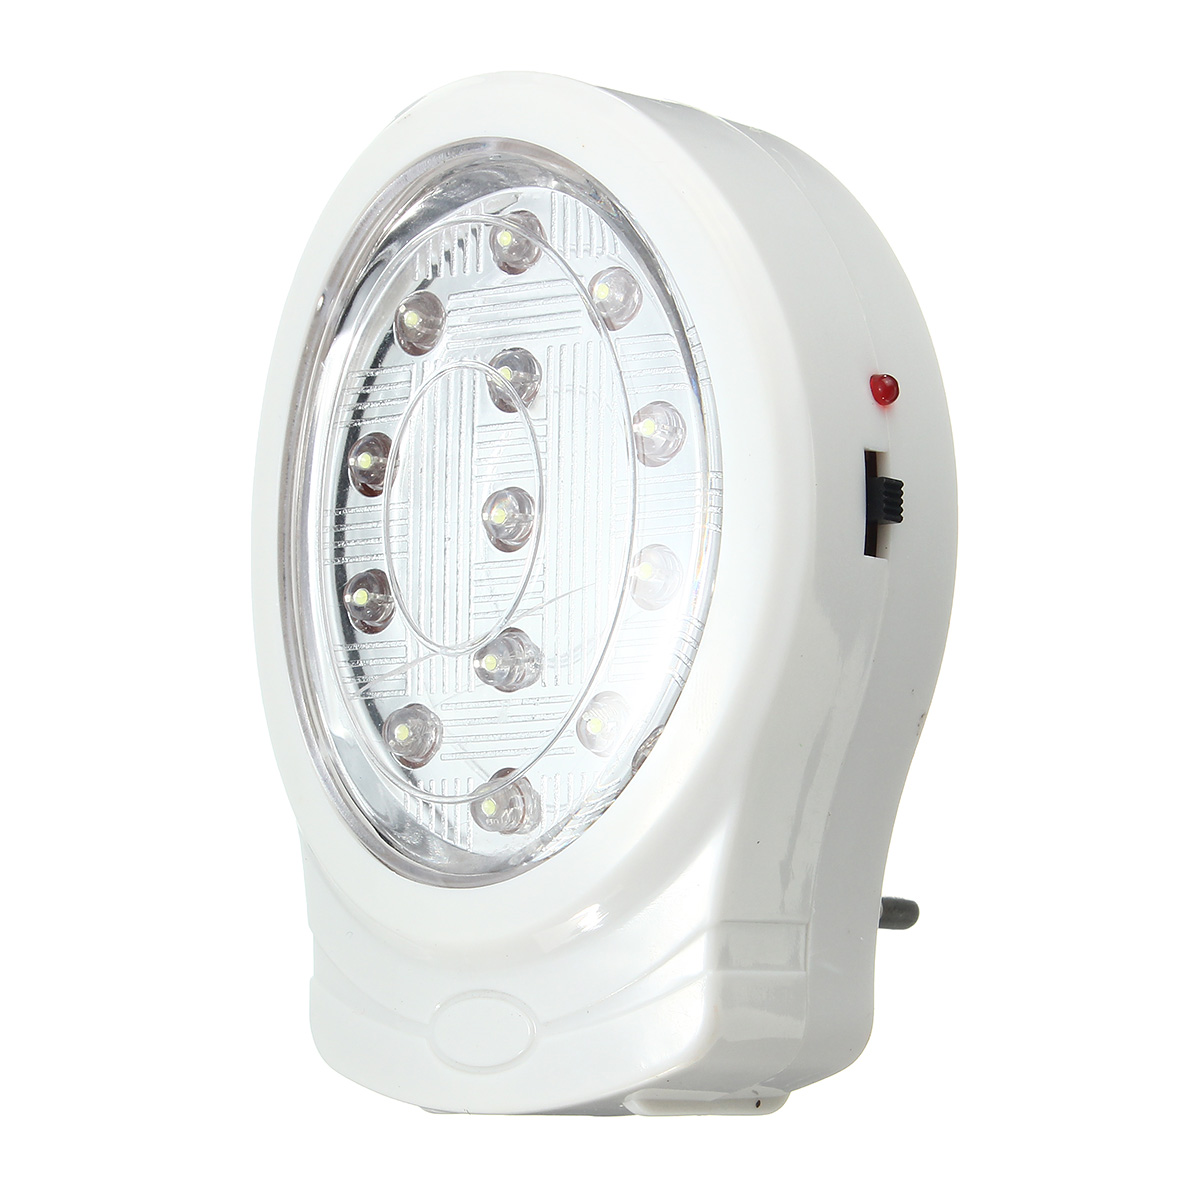 Rechargeable LED Home Wall Emergency Light Power Failure Lamp Bulb EU Plug AC110-240V For Bedroom Night Light